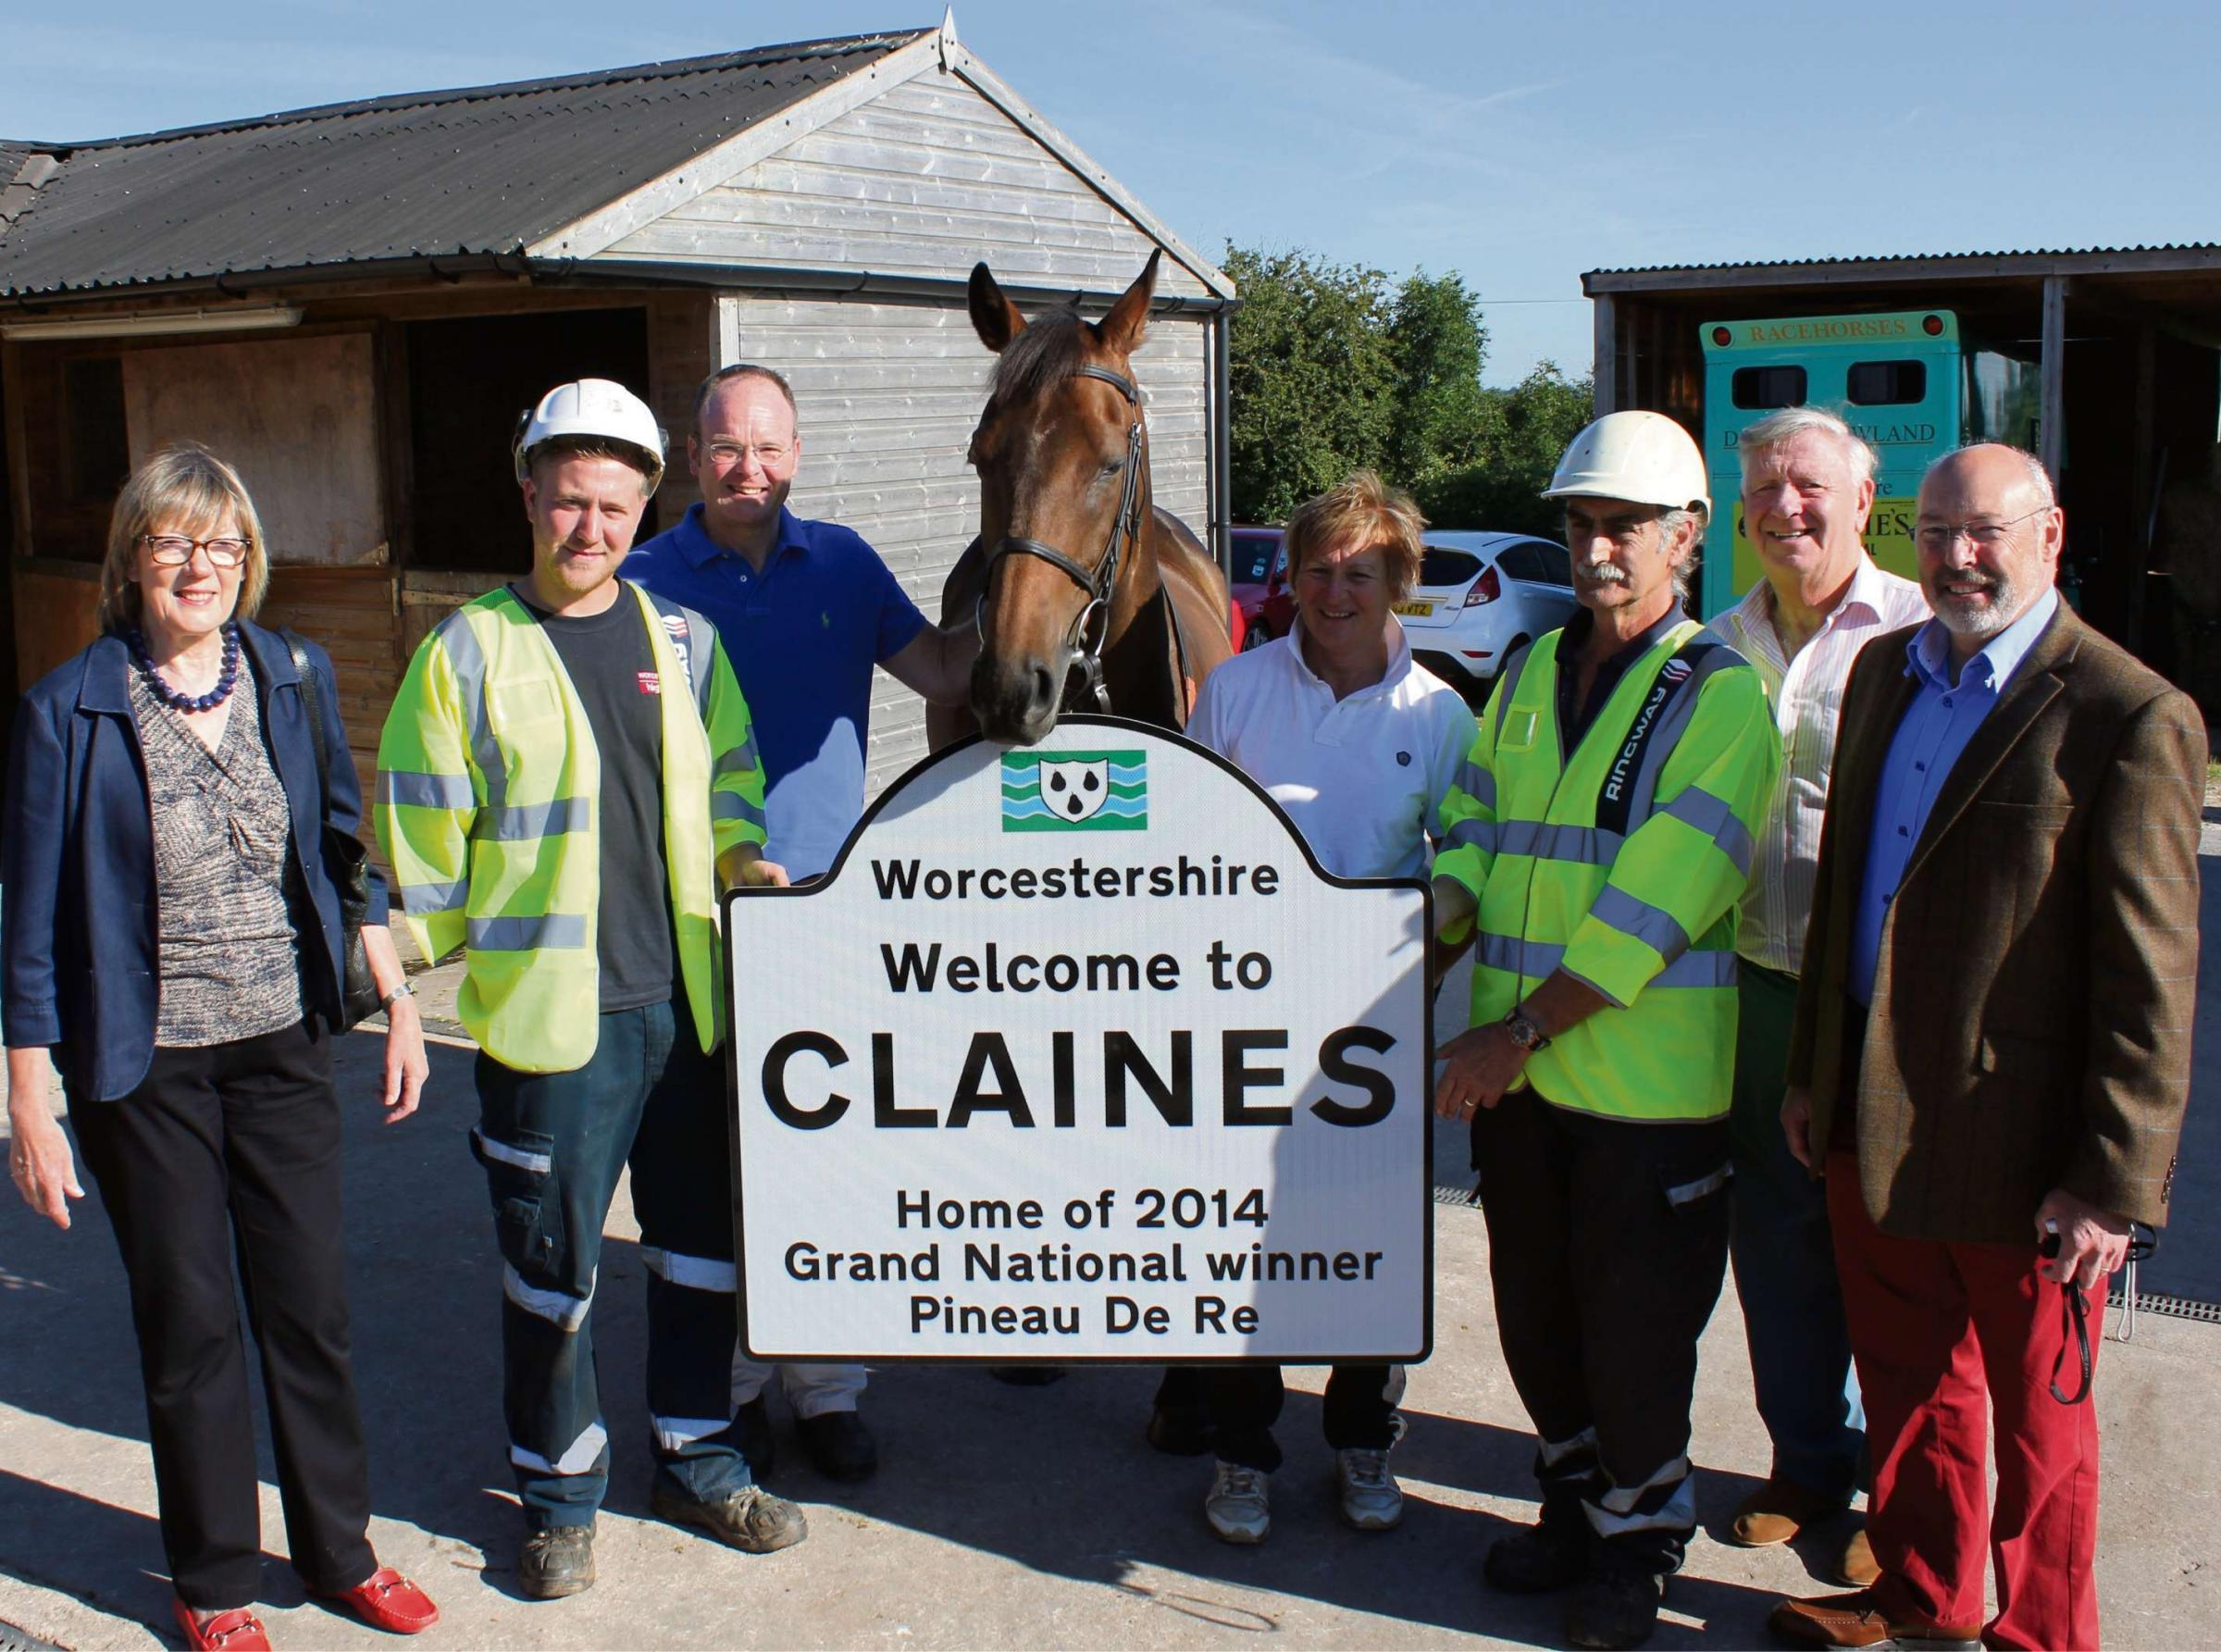 Grand National winner Pineau De Re with (from left) Councillor Sue Askin local councillor for Claines, Sam Golding from Ringway, Dr Richard Newland, Carolyn White, Pineau De Re's groom, Councillor John Smith OBE cabinet member for highways, Bob Garfie